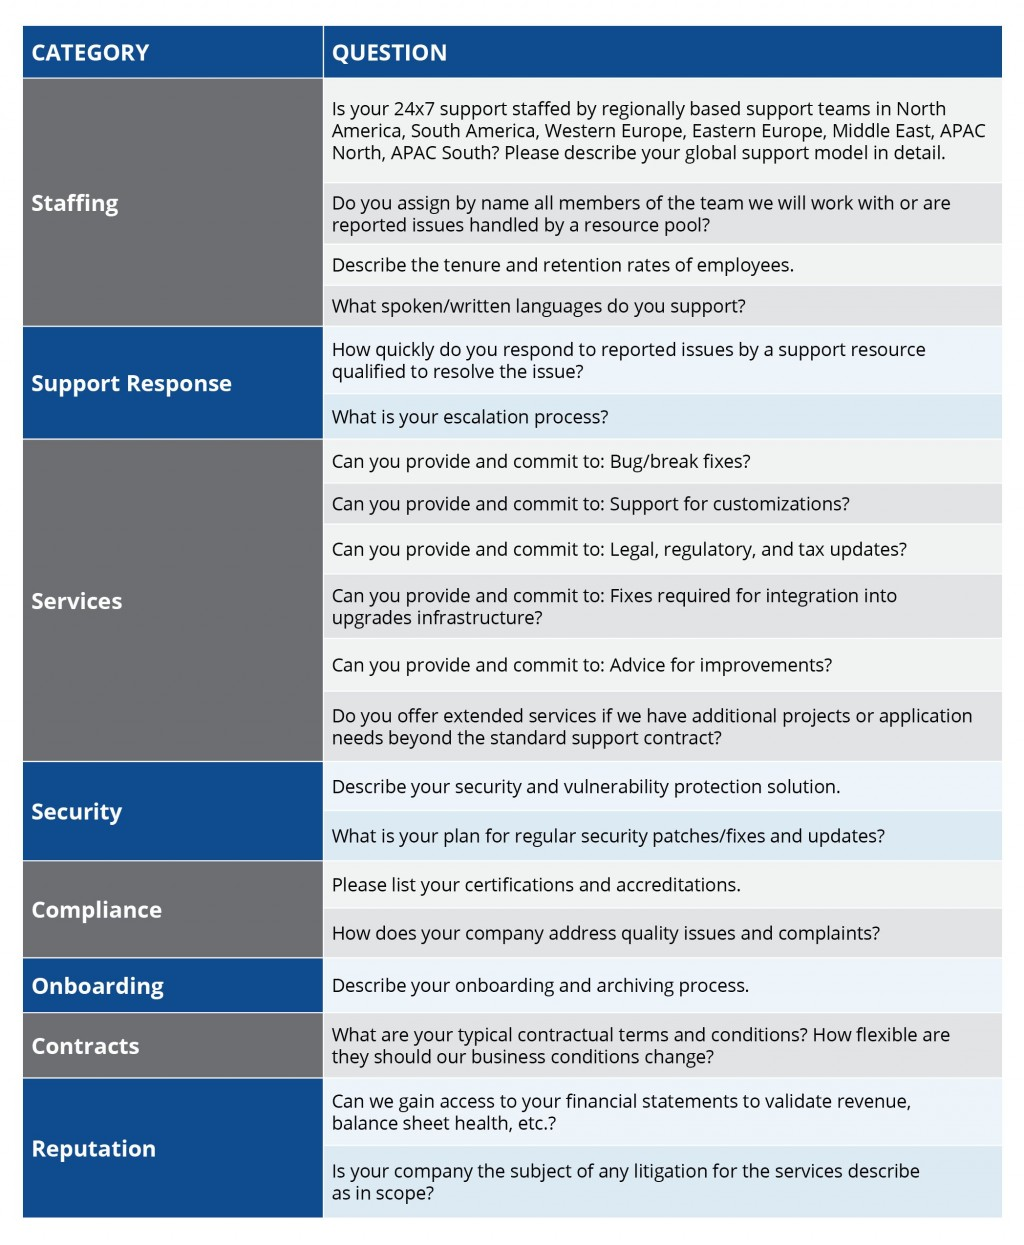 007 Magnificent Request For Proposal Template Australia High Resolution Large